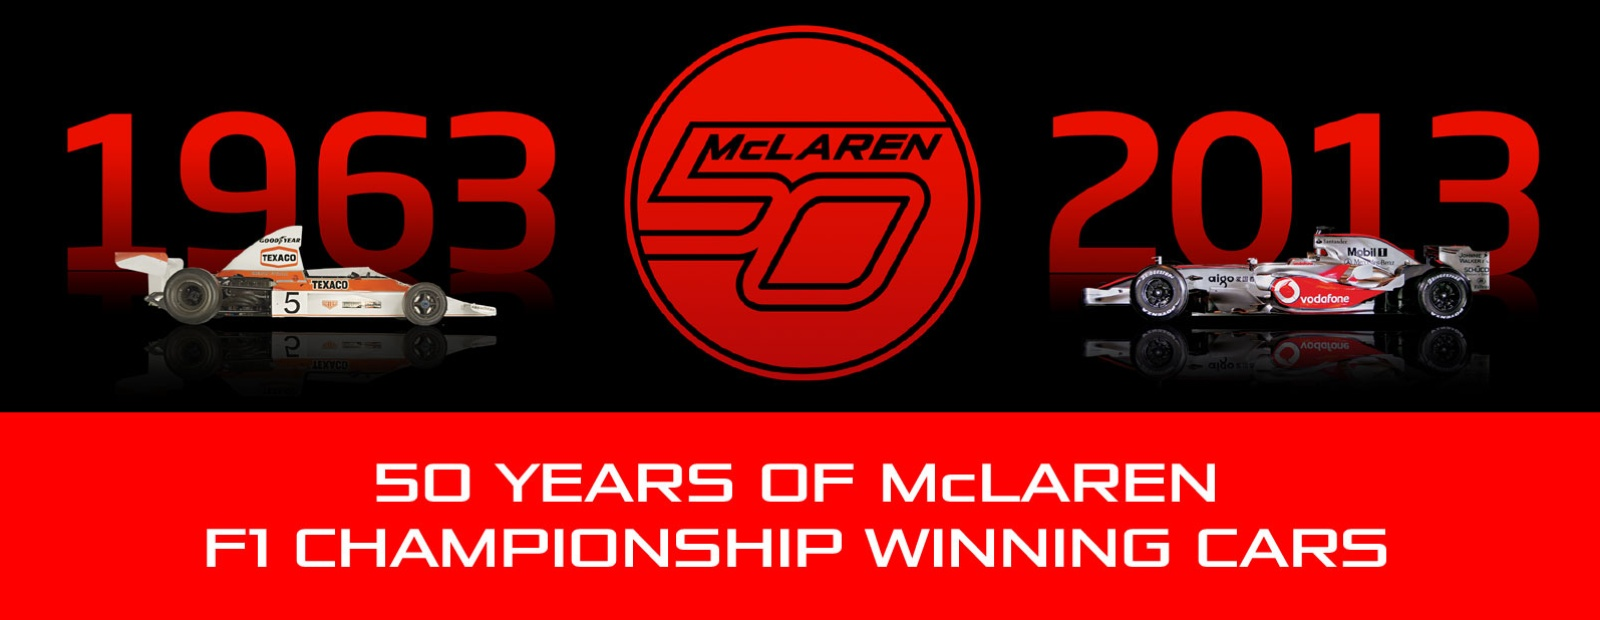 mclaren formula 1 - 50 years of mclaren f1 championship winning cars